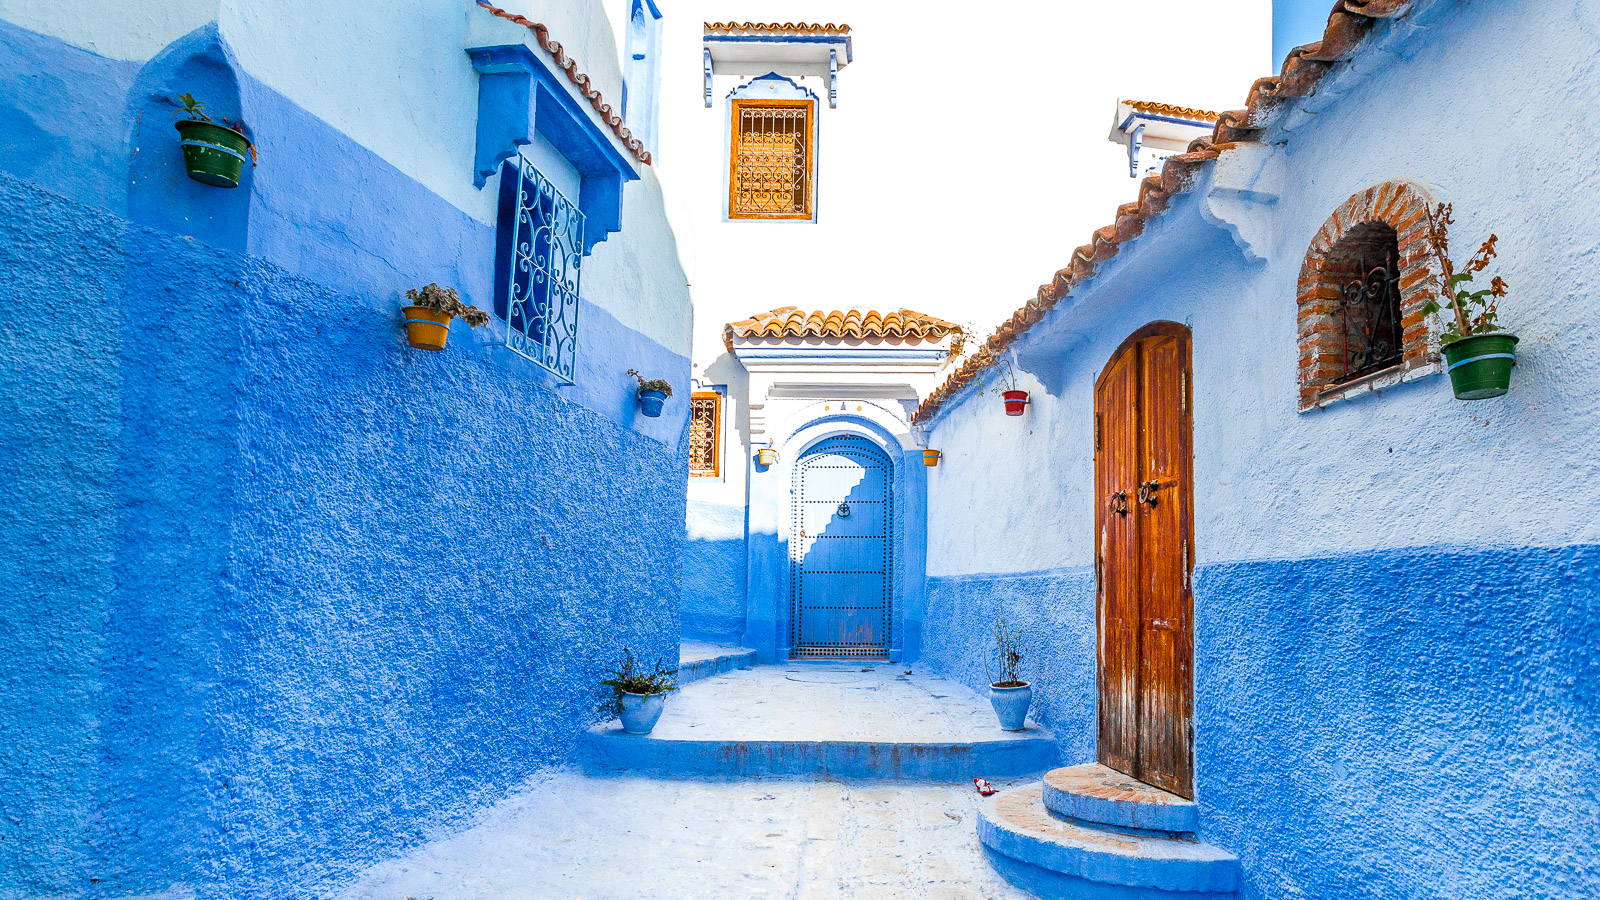 The streets and doors of Chefchaouen